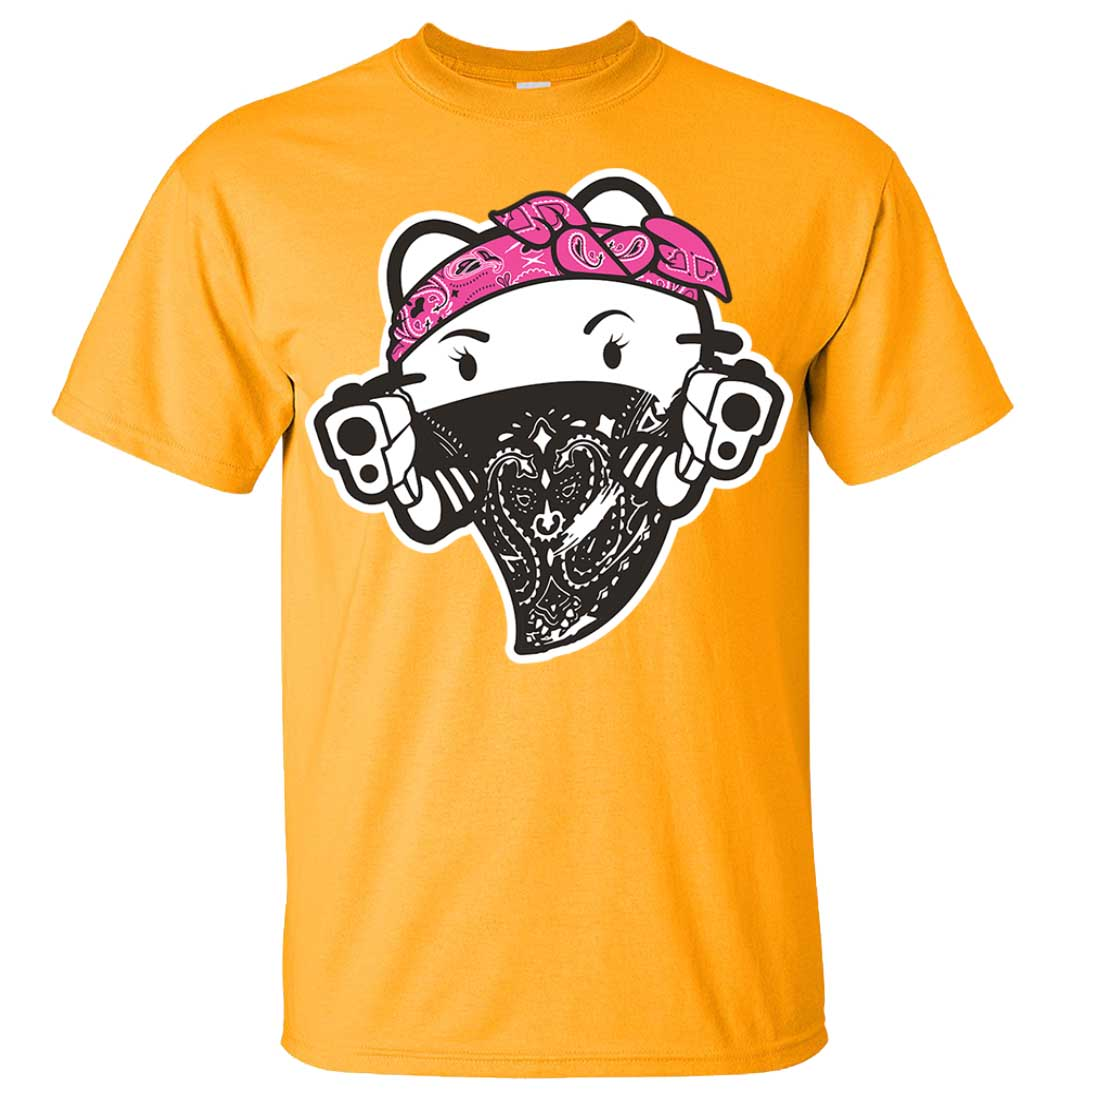 Hello kitty gangster thug asst colors t shirt tee ebay for Dolphins t shirt new logo